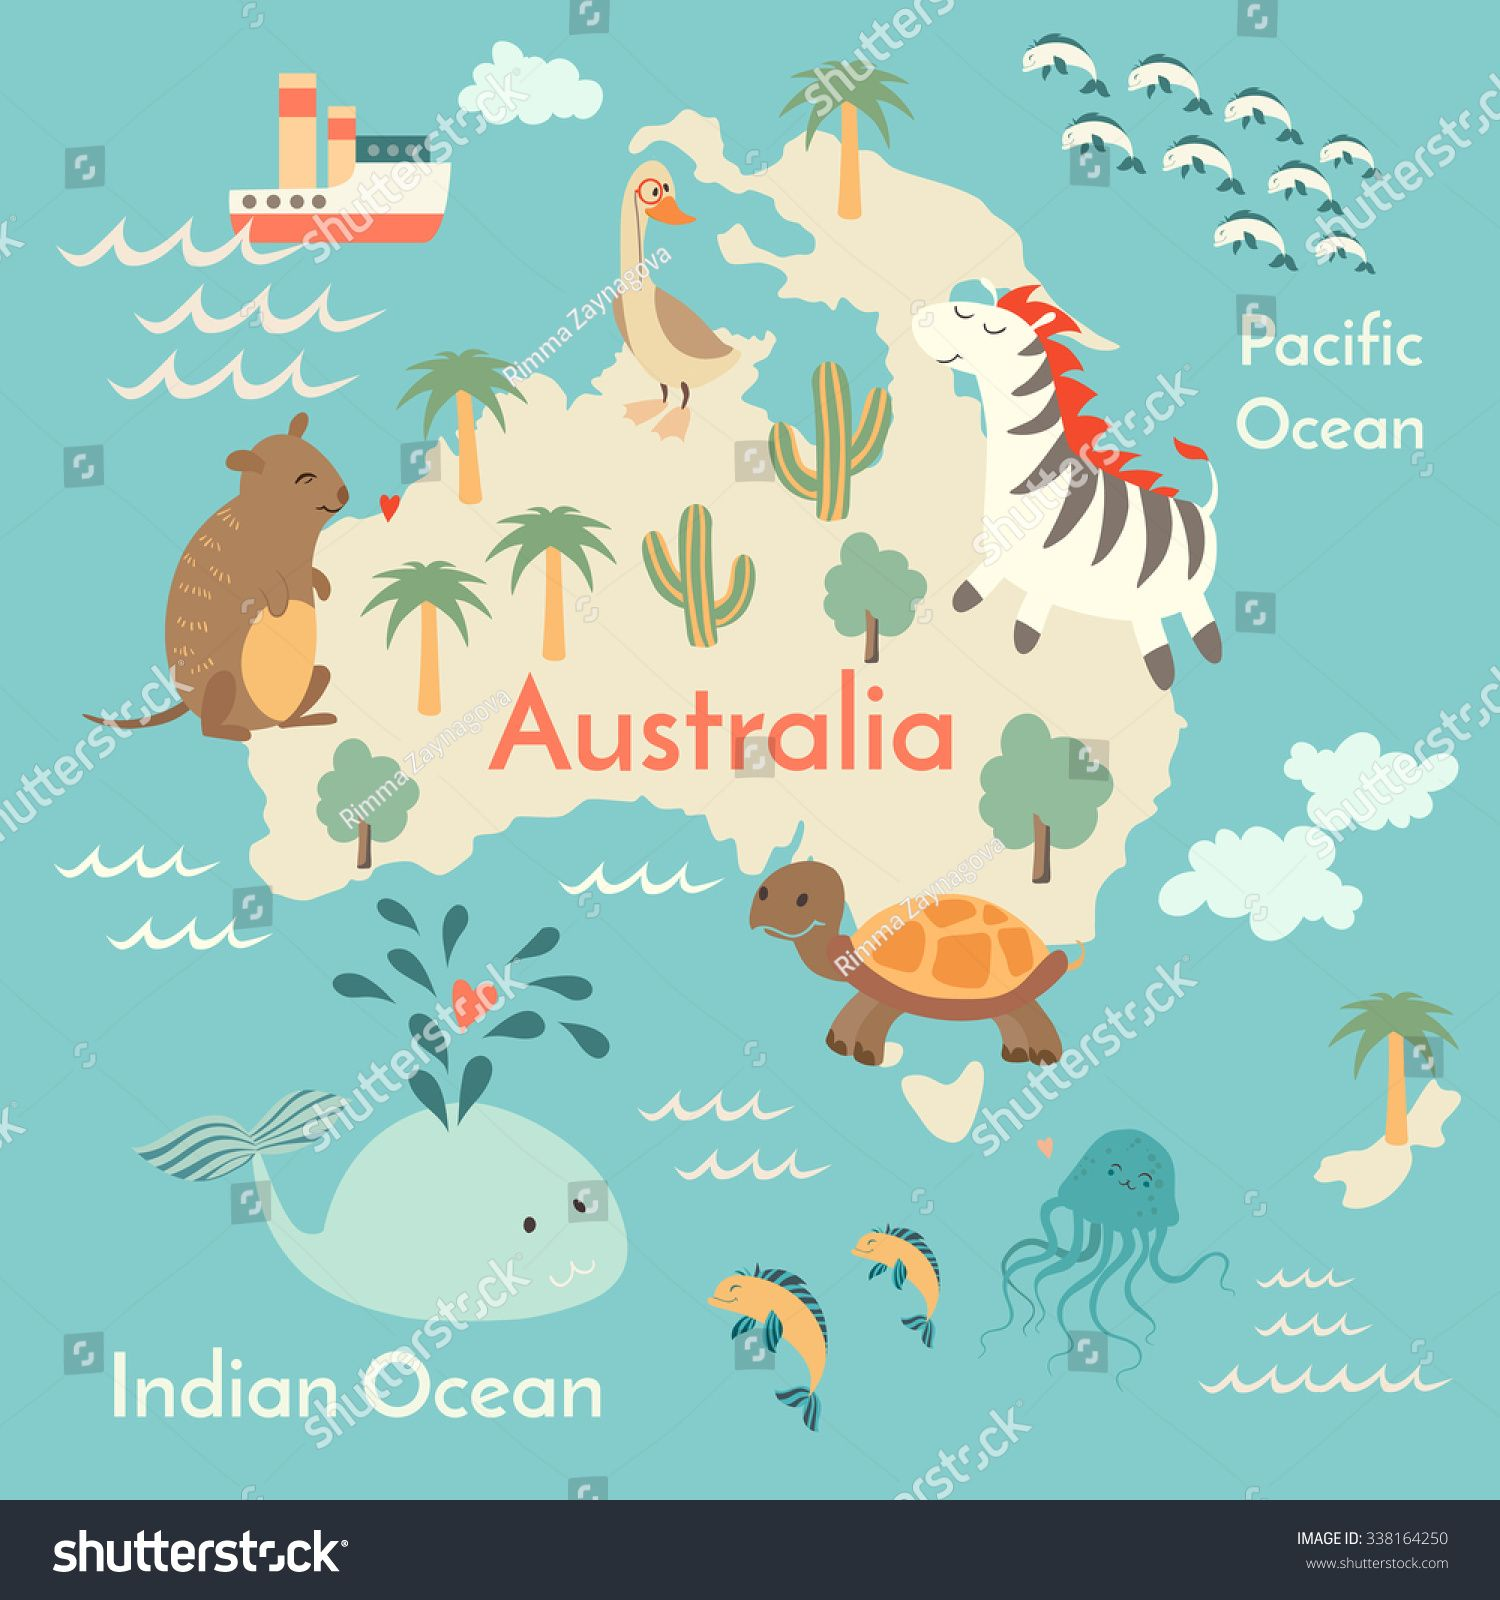 Animals world map australiastralia map for childrenkids animals world map australiastralia map for childrenkids australian animals poster gumiabroncs Choice Image